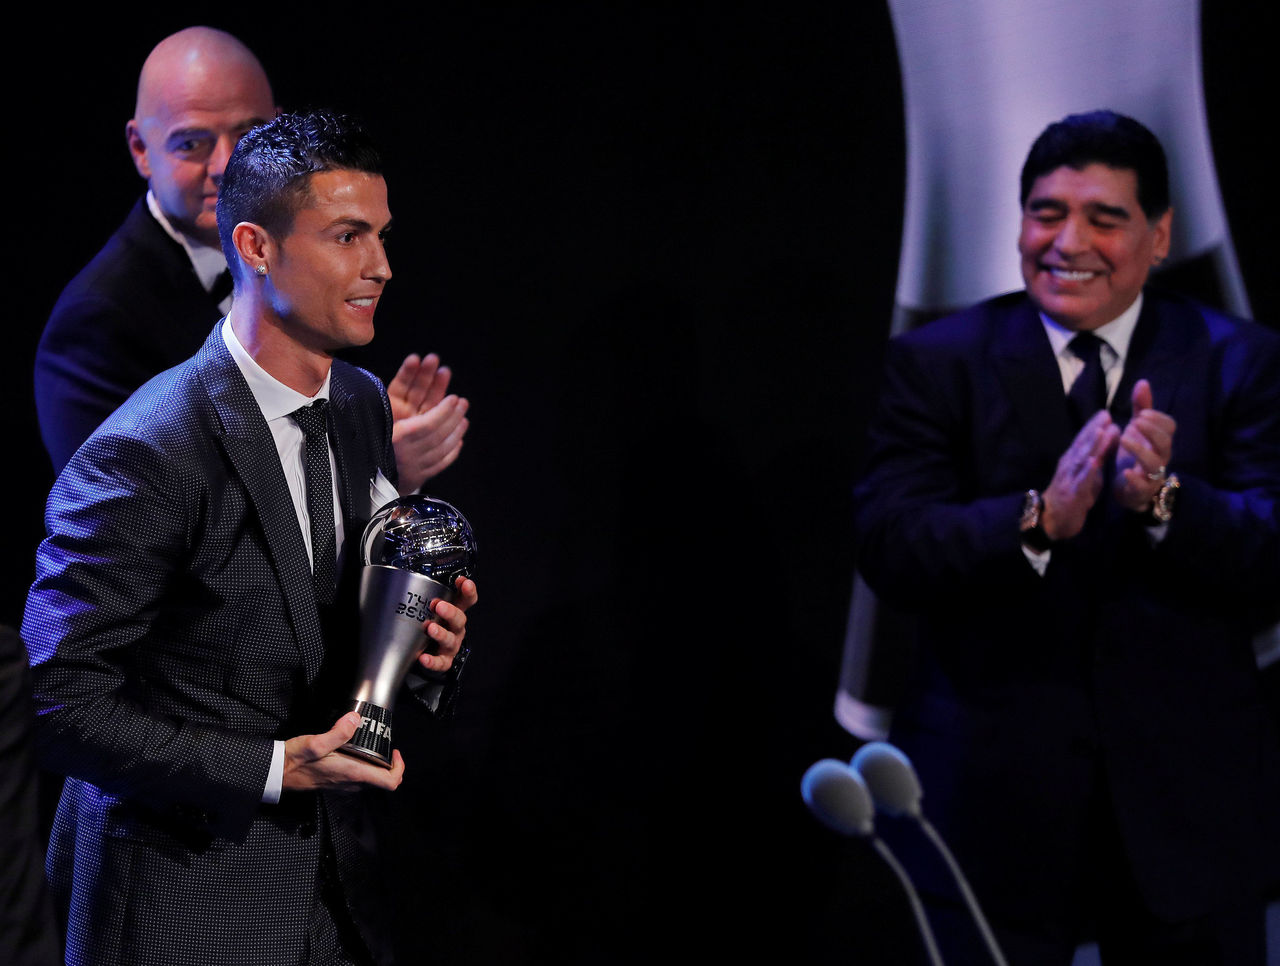 Cropped 2017 10 23t204620z 1622000869 rc14a3fd0580 rtrmadp 3 soccer fifa awards  1